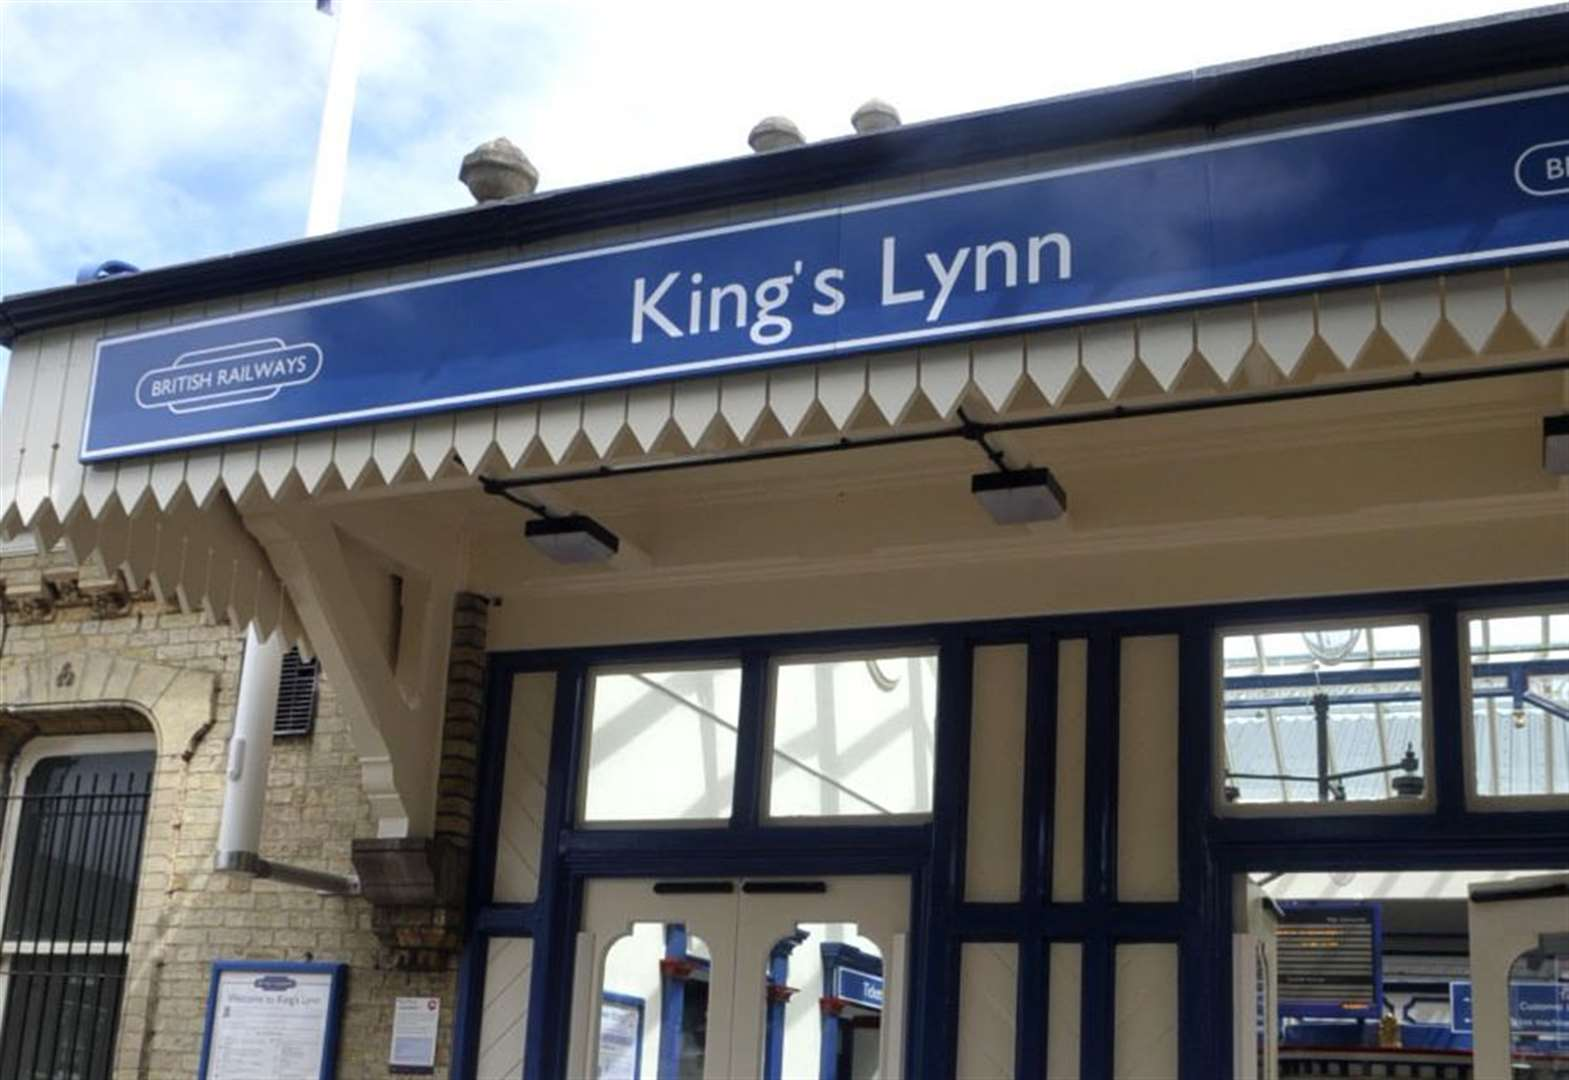 Overhead power line damage causes disruption for Lynn railway passengers